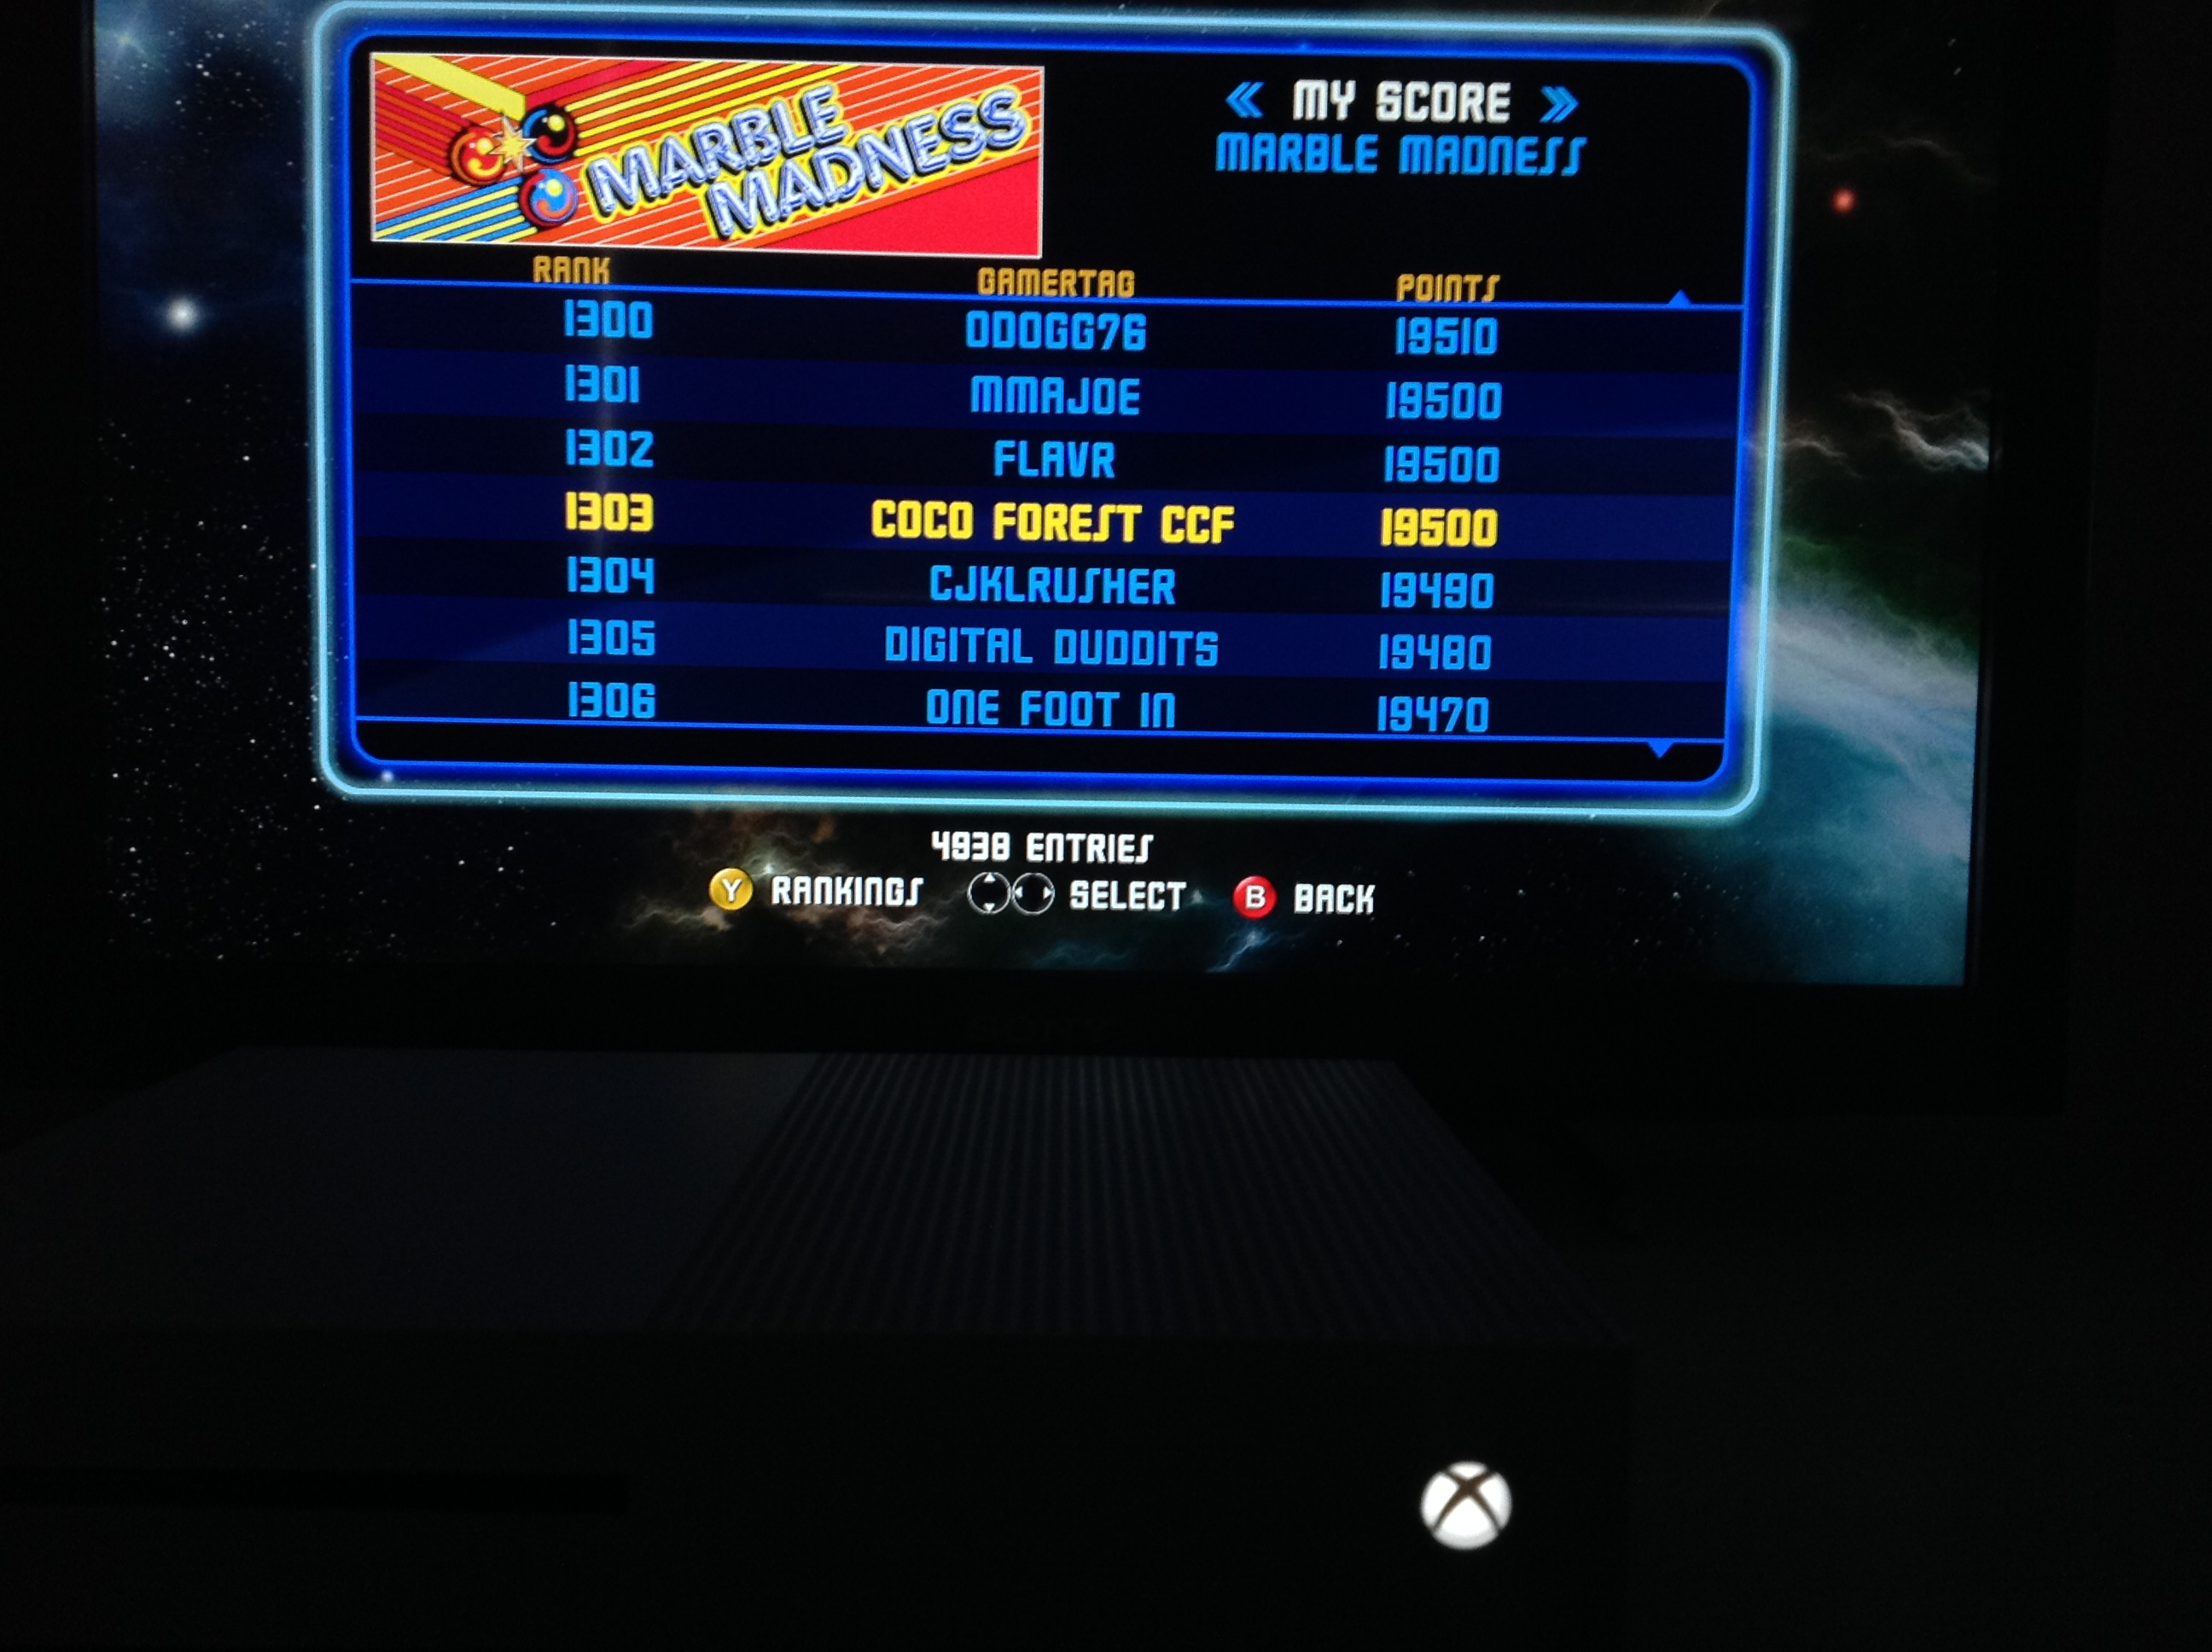 CoCoForest: Midway Arcade Origins: Marble Madness (Xbox 360) 19,500 points on 2019-05-26 14:22:20